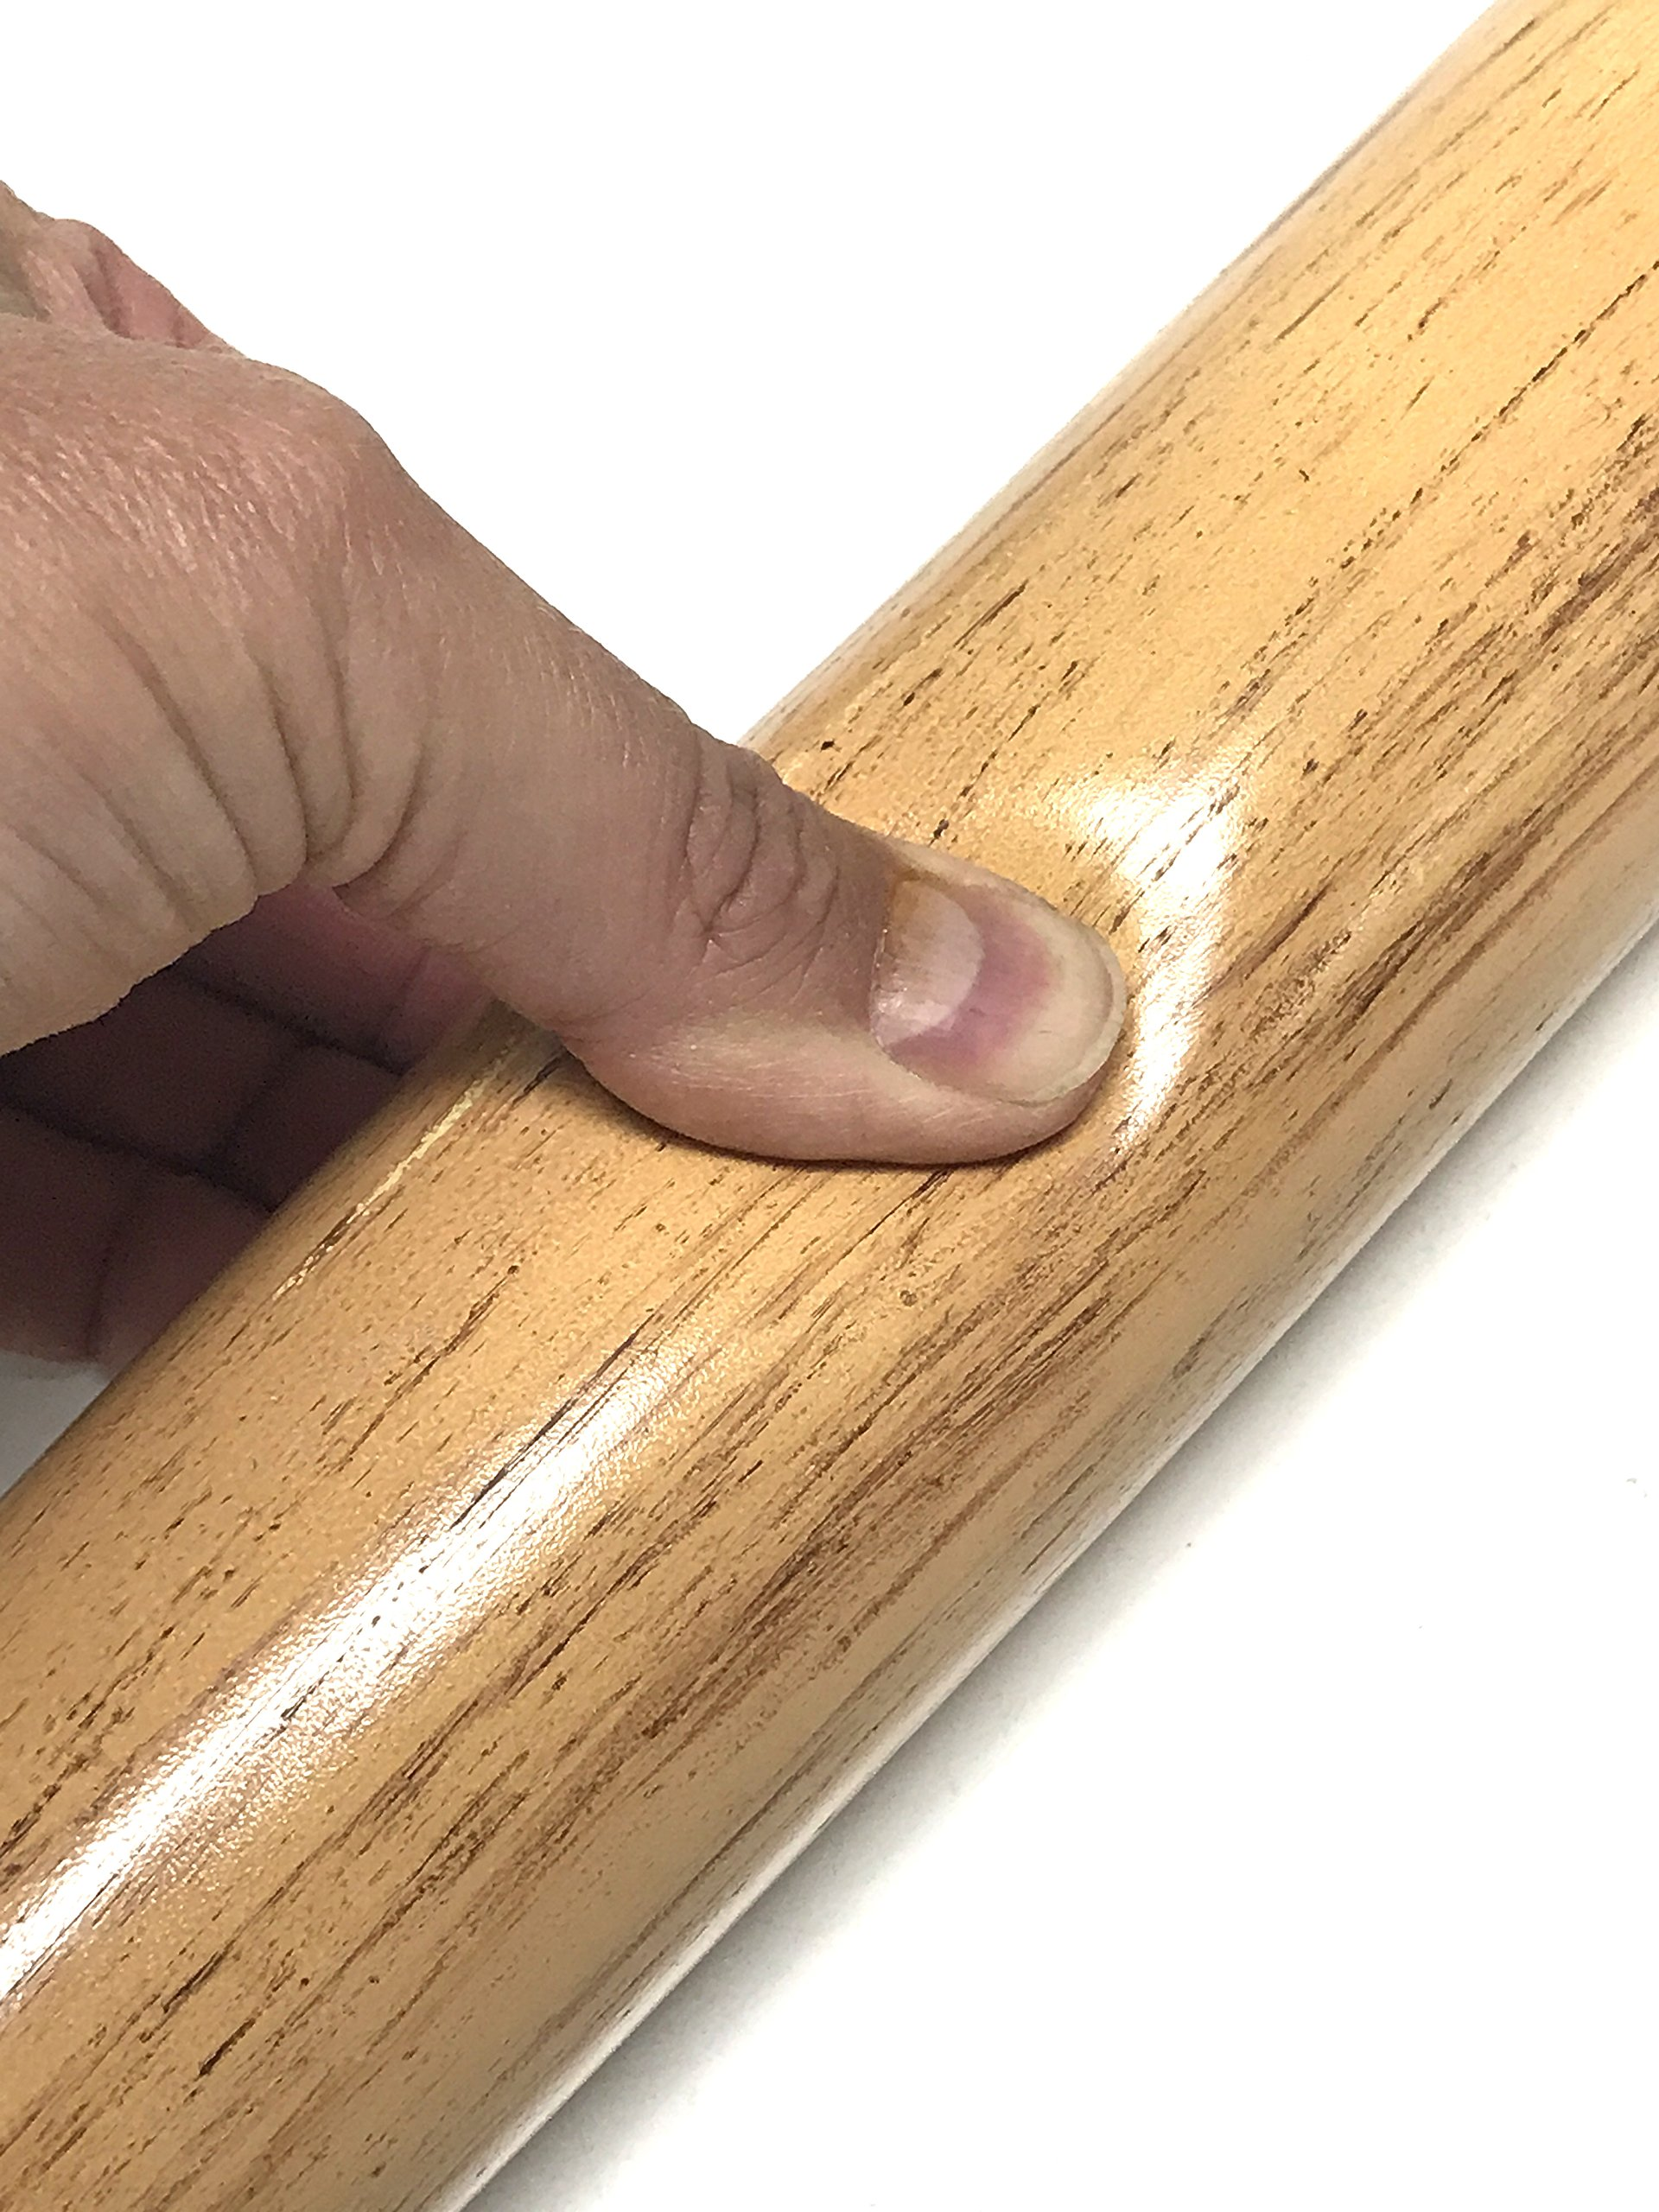 NewRuleFX Foam Rubber Baseball Bat with Simulated Light Wood Grain Special Effects Prop by NewRuleFX (Image #2)